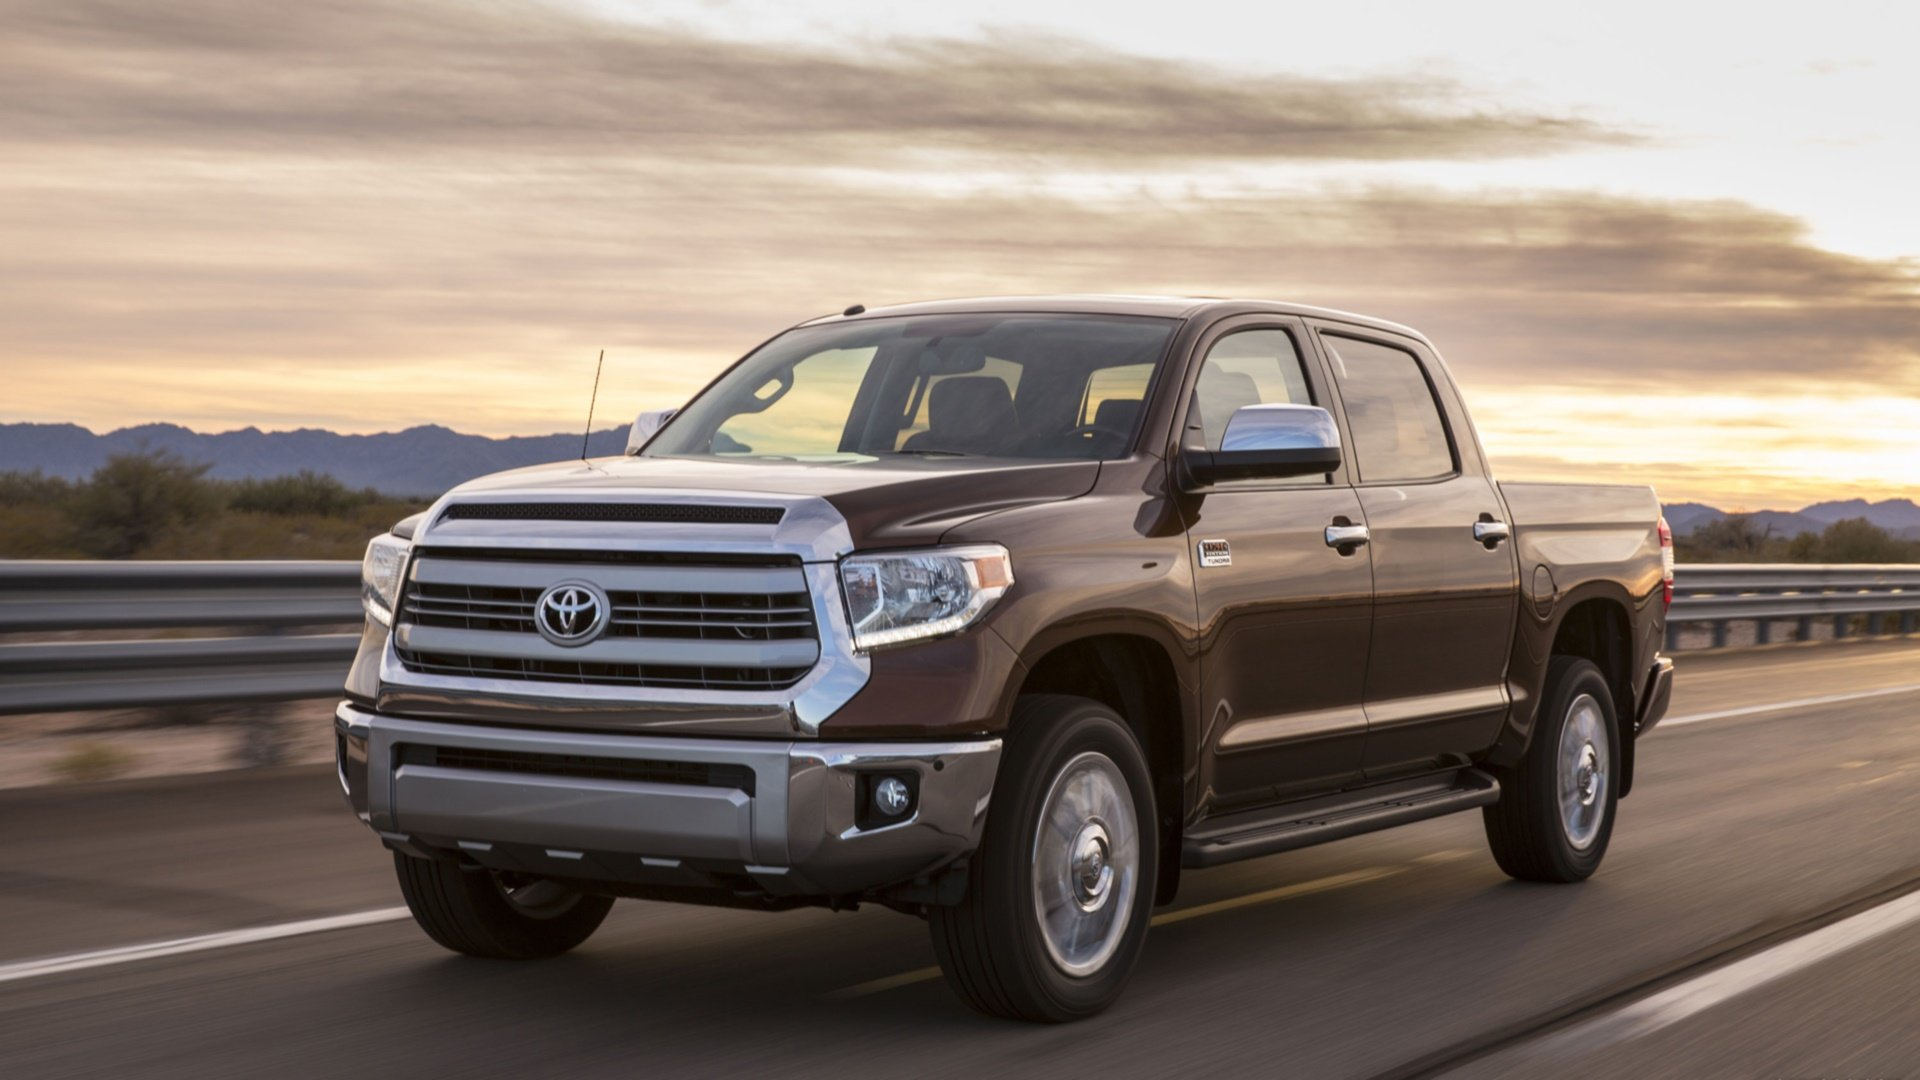 Free Download Toyota Tundra Wallpaper ID246619 Hd 1080p For PC